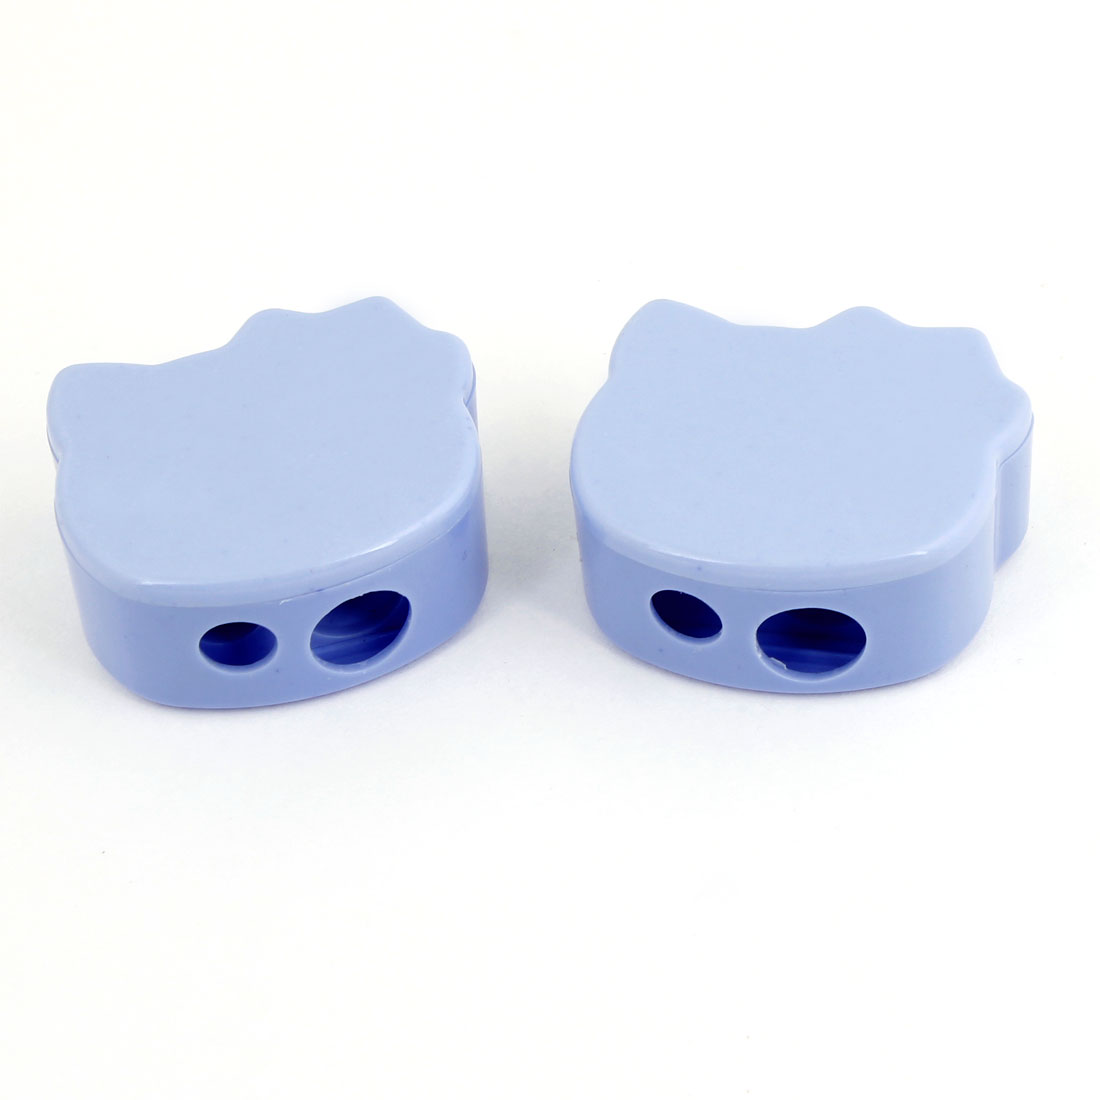 Pair Blue Plastic Shell Dual Hole Eyebrow Pencil Sharpener Makeup Tool